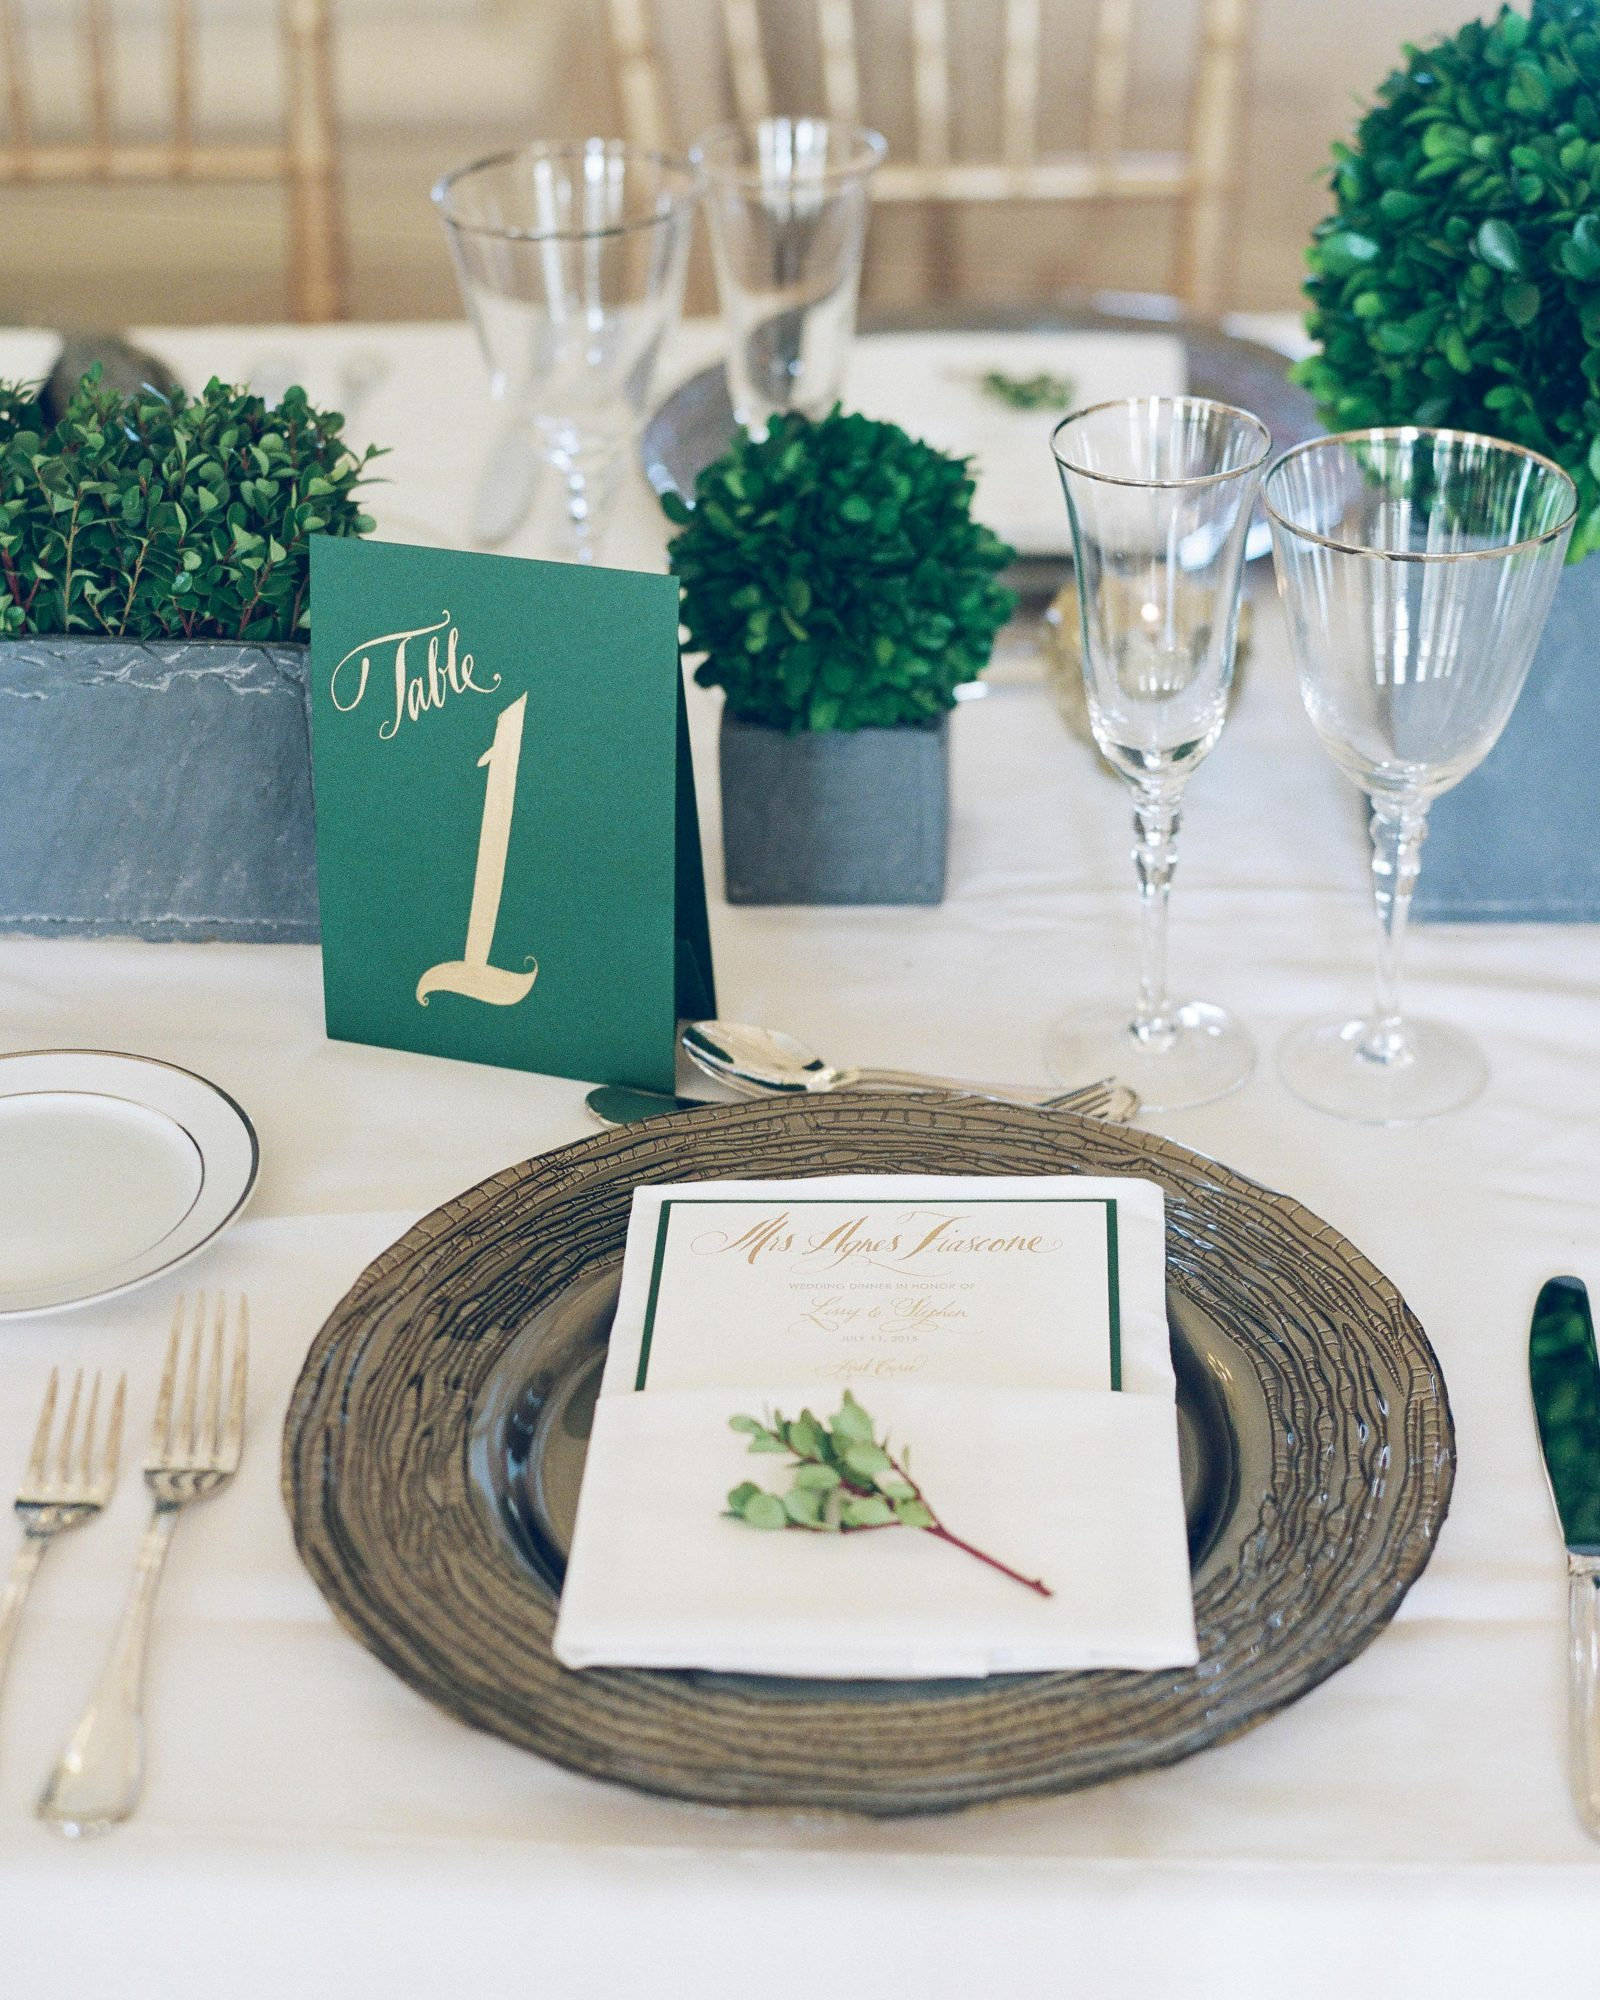 lissy-steven-wedding-newport-placesetting-160-elizabethmessina-s112907-0516.jpg